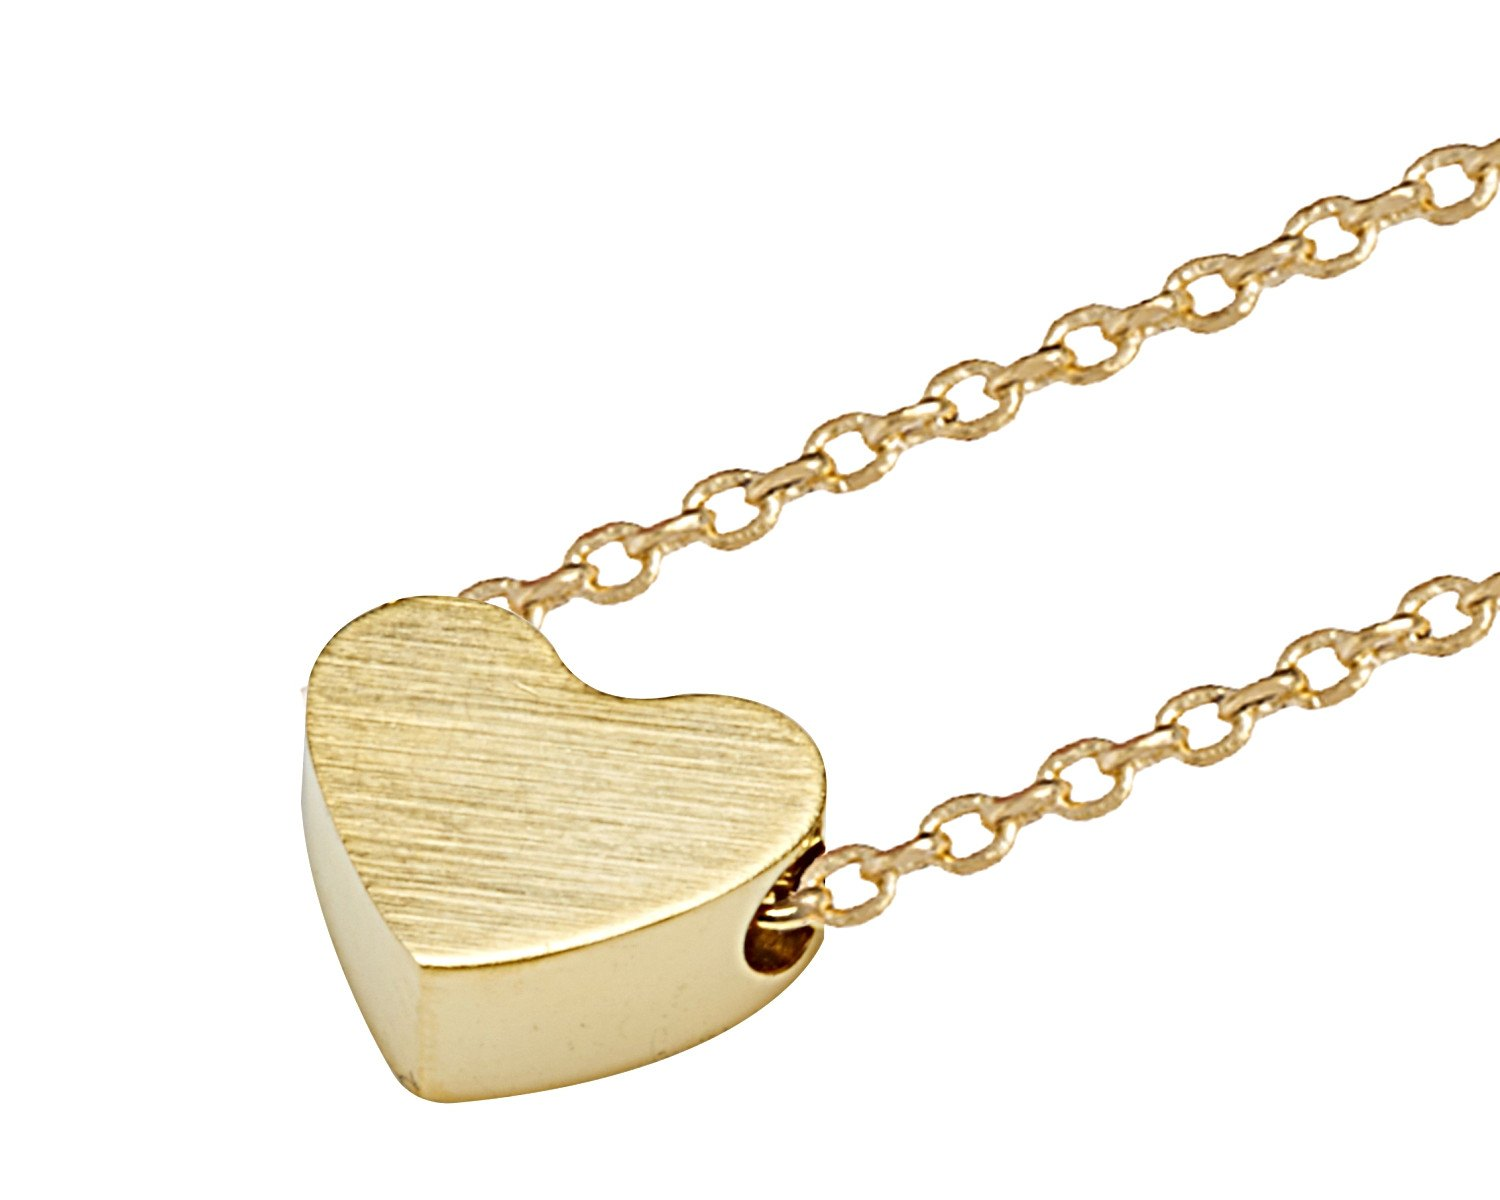 Delicate Heart Necklace in Gold - Sweet Yara